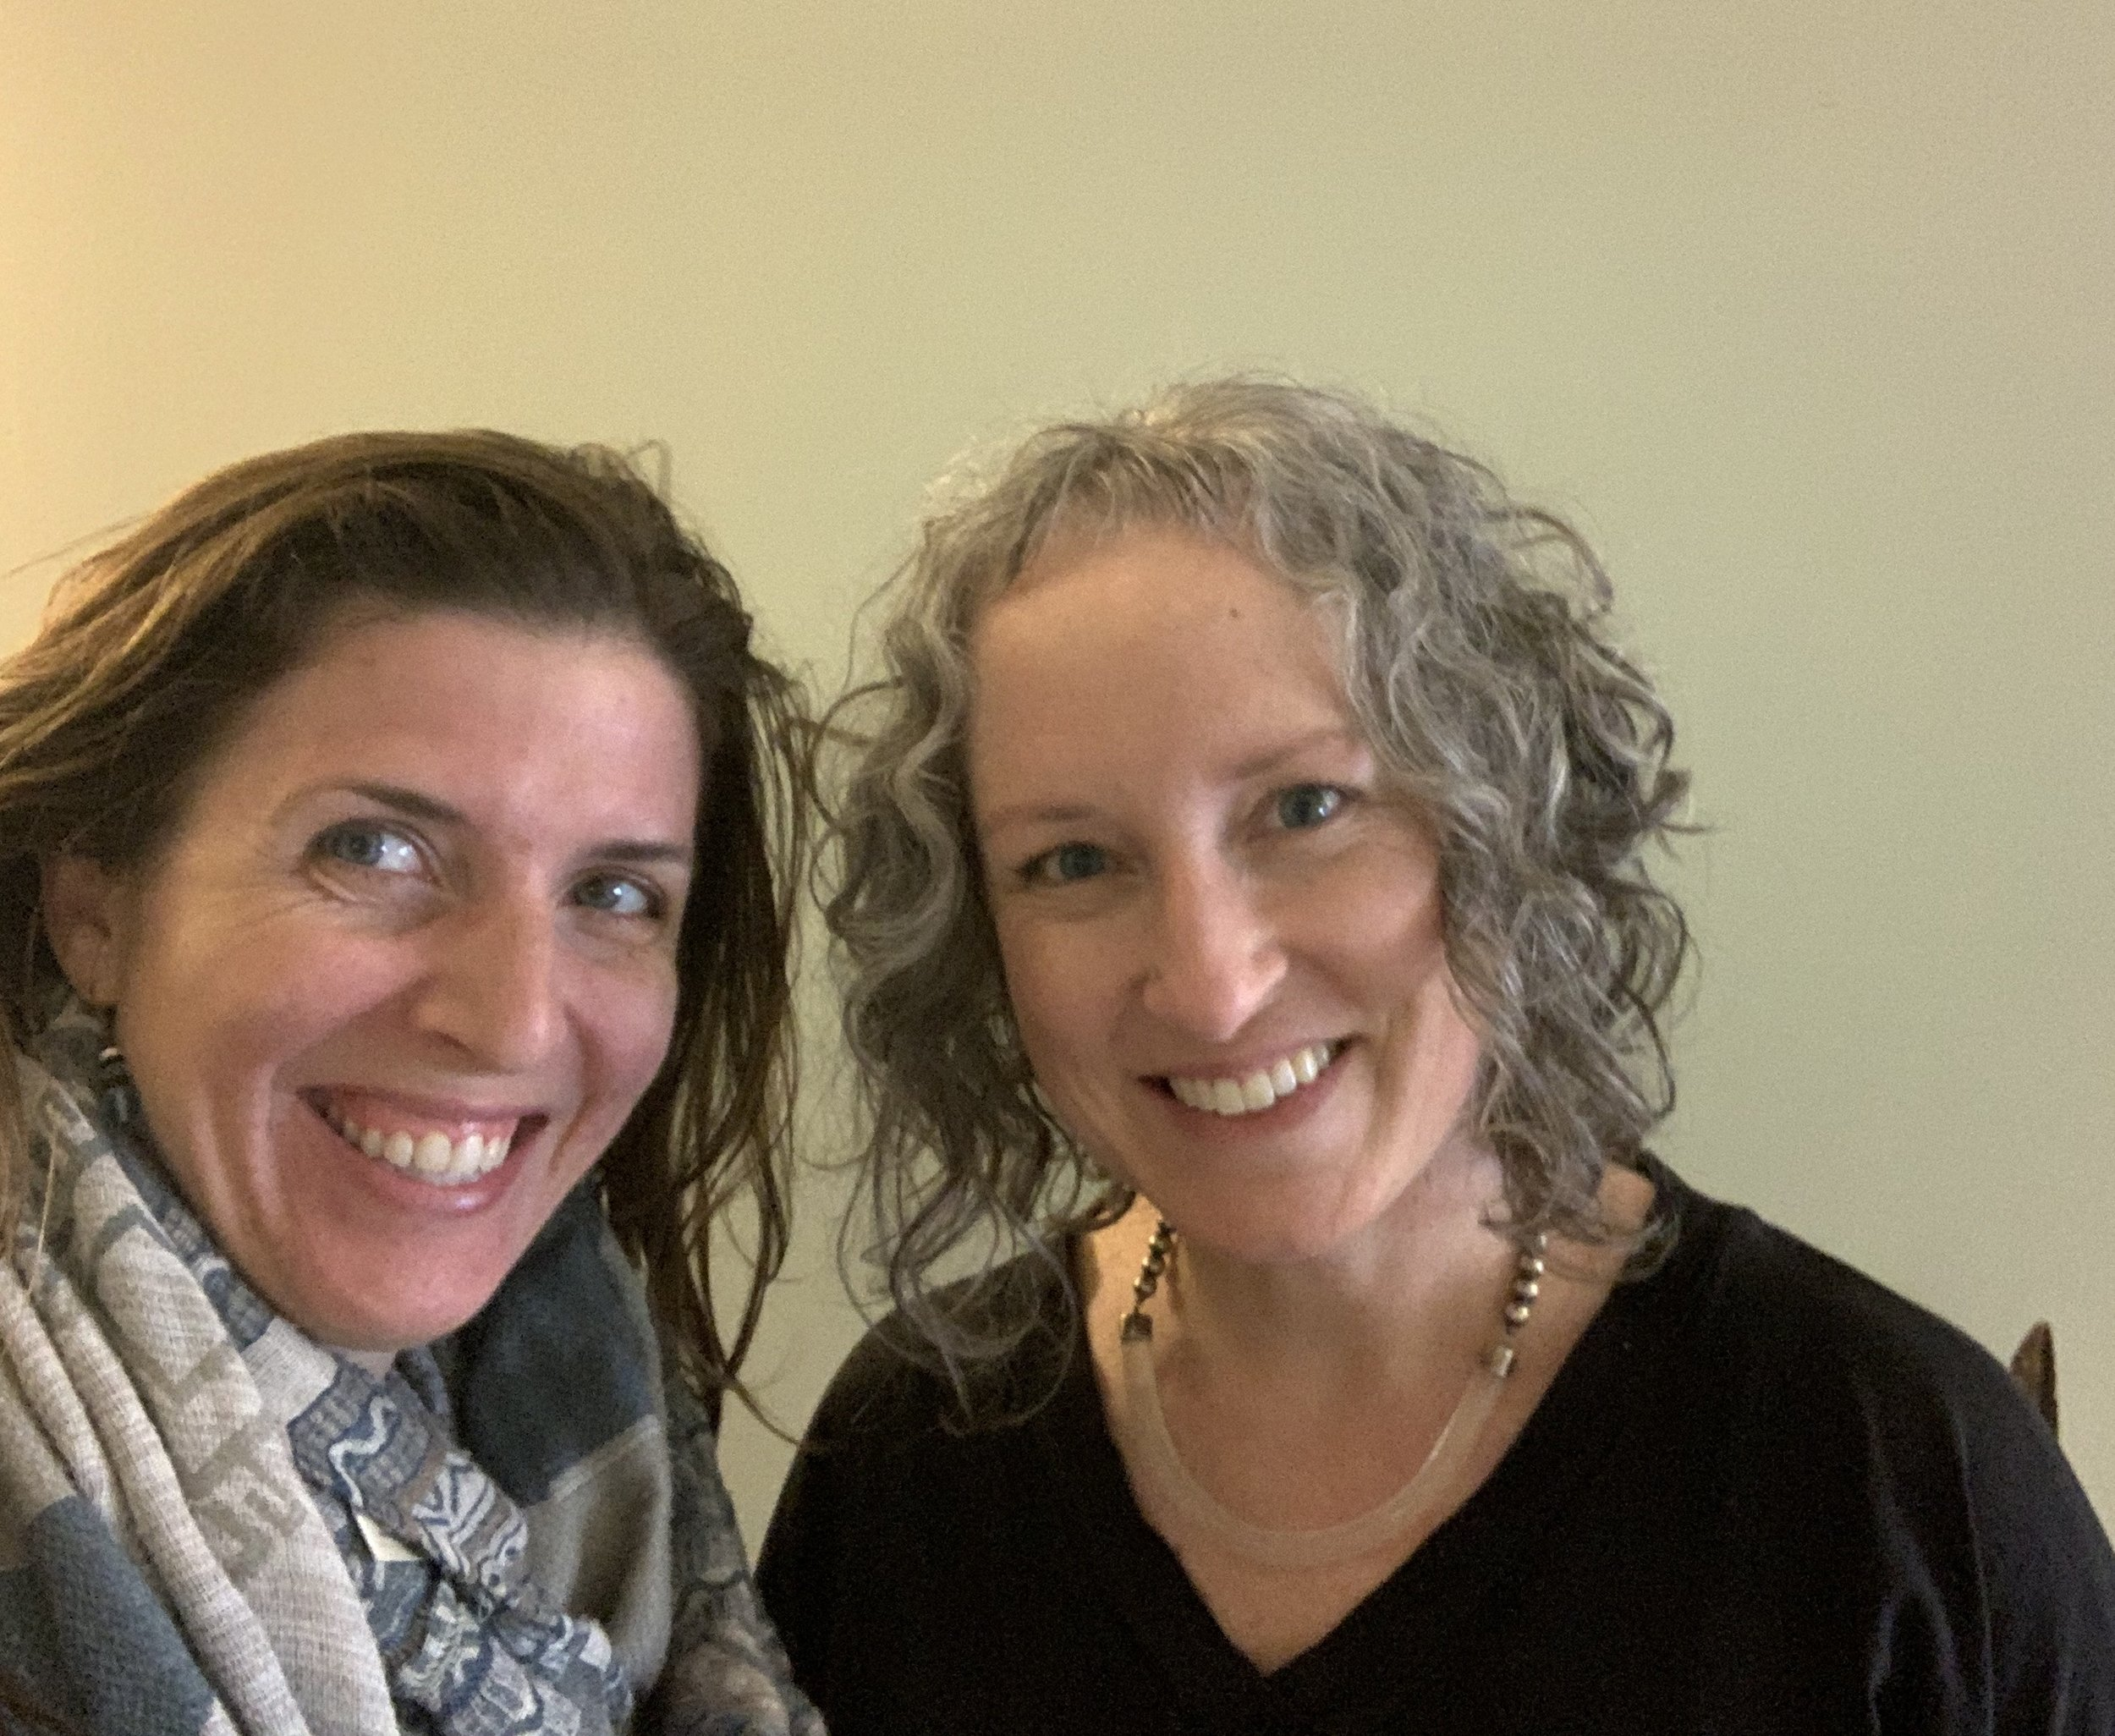 Join Phoebe and Erika for an afternoon for movement and breathwork